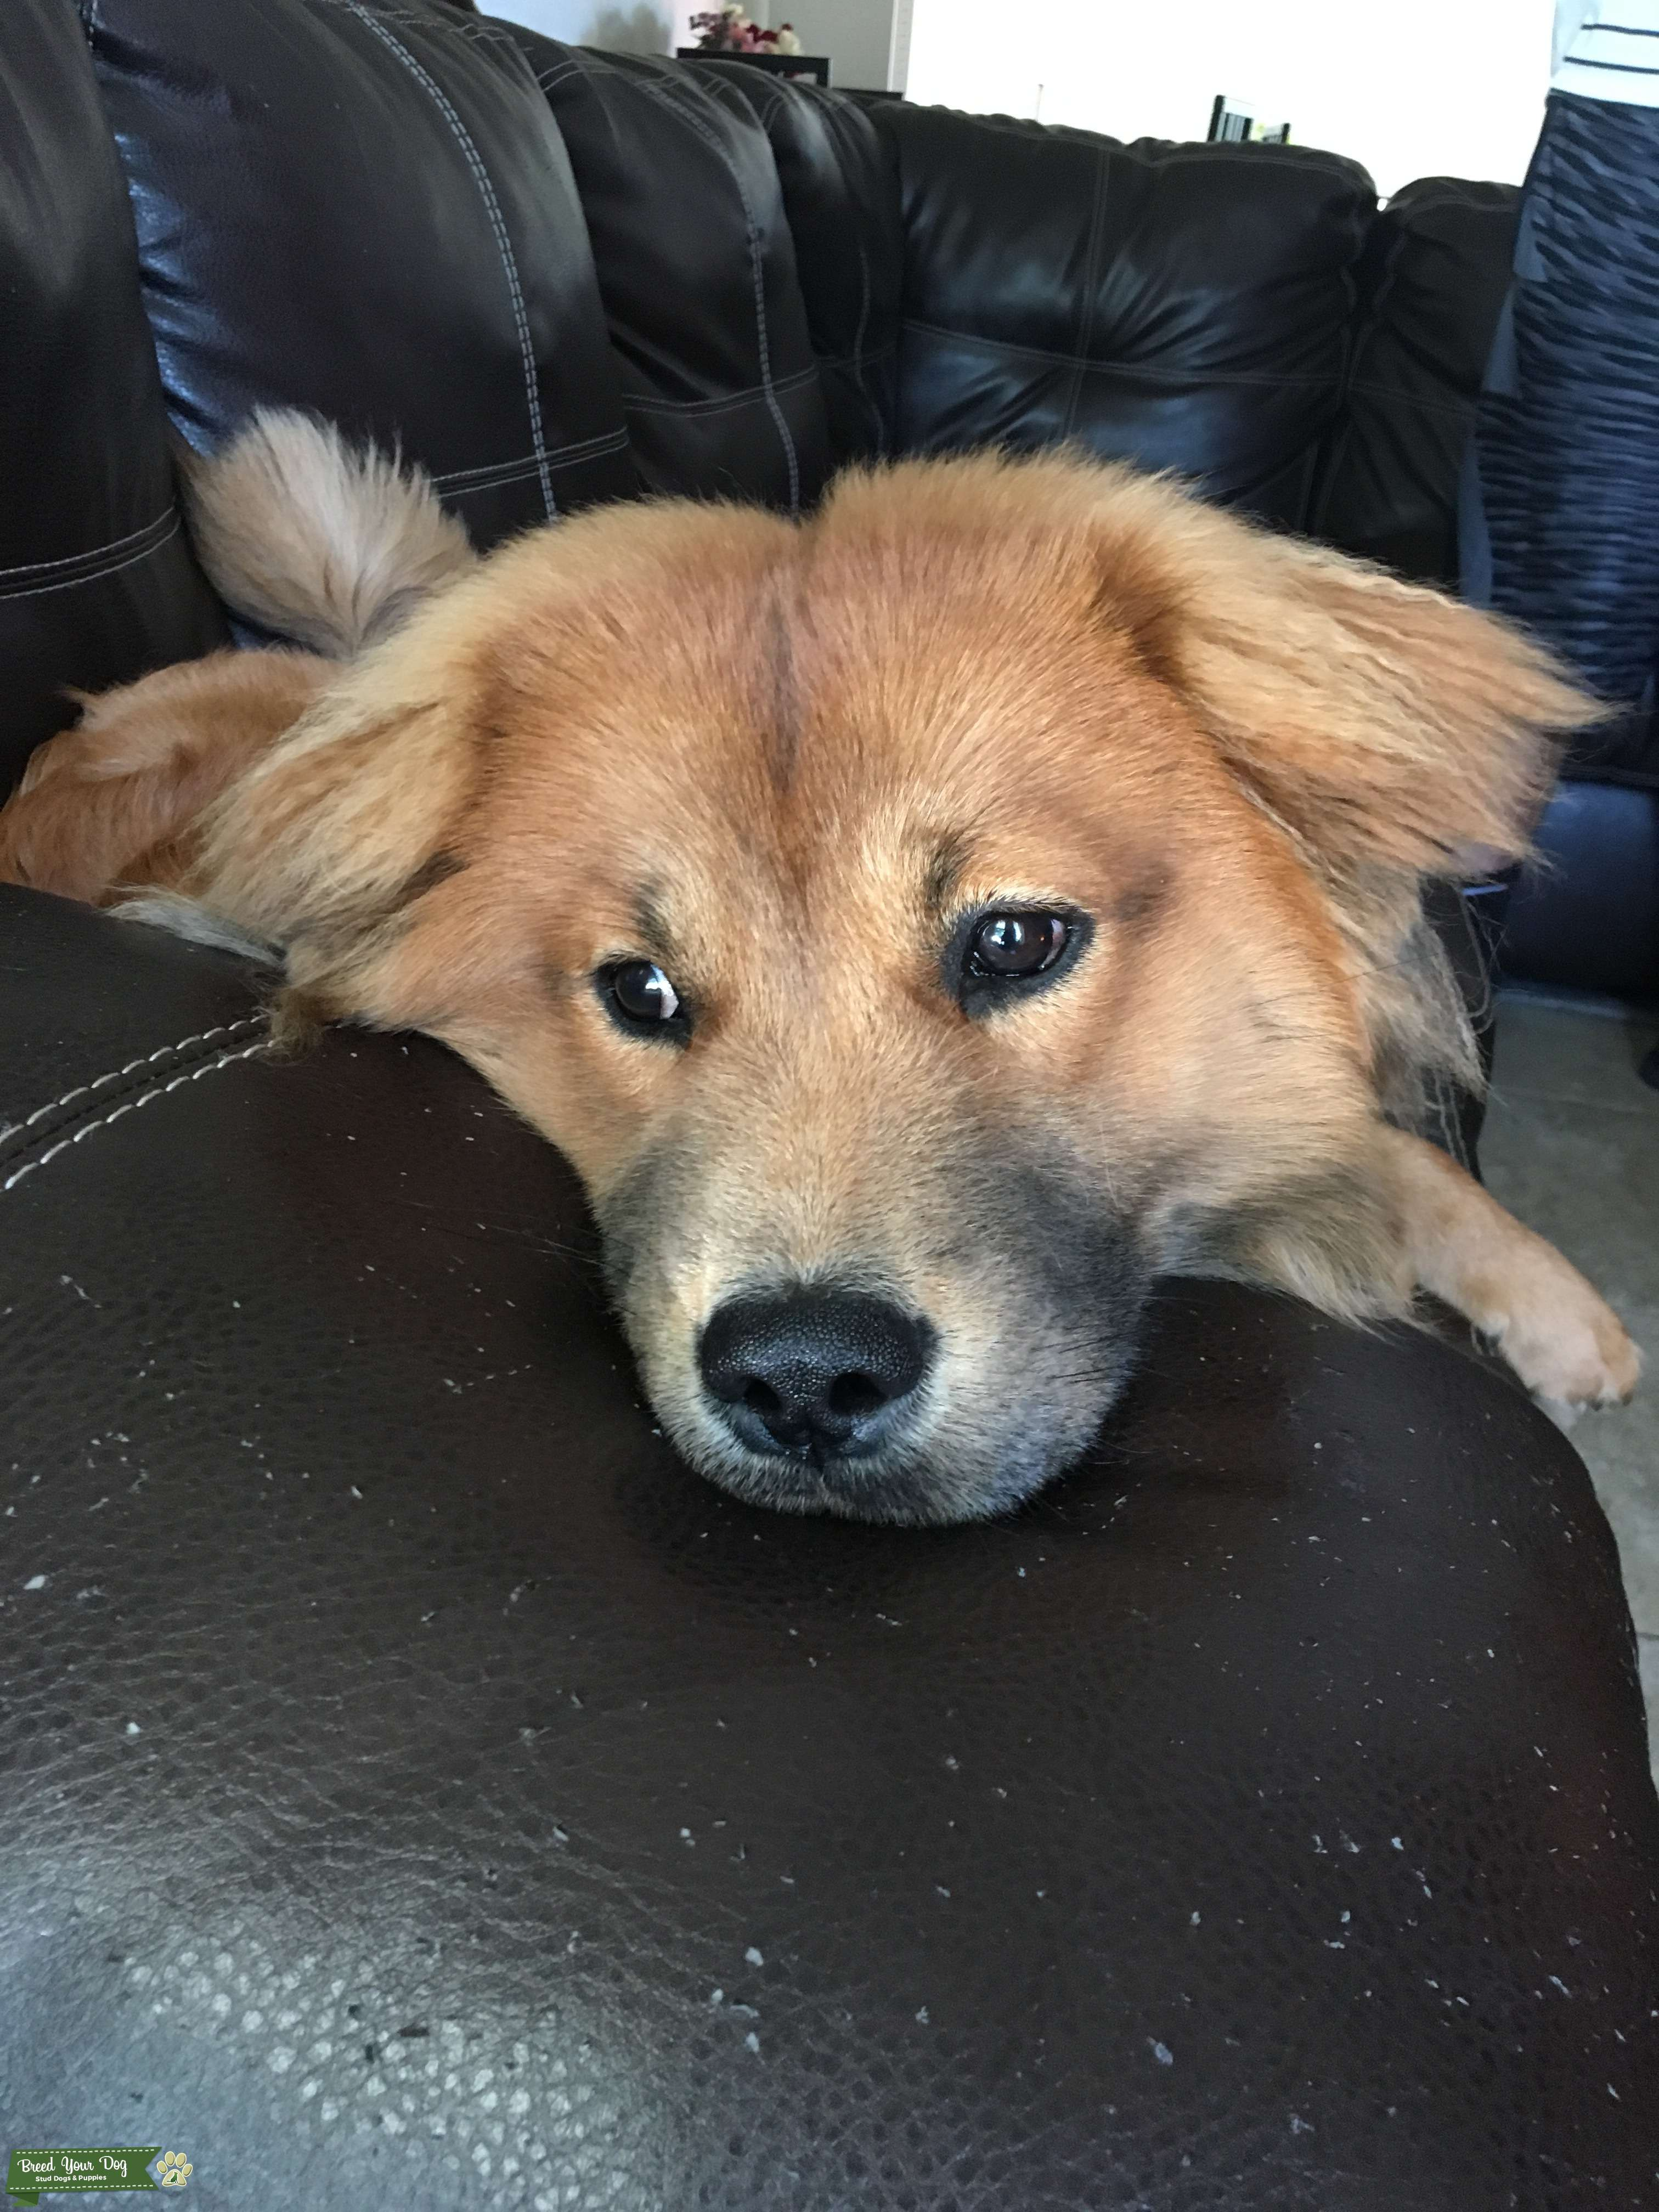 Stud Dog - Chow chow lab mix - Breed Your Dog